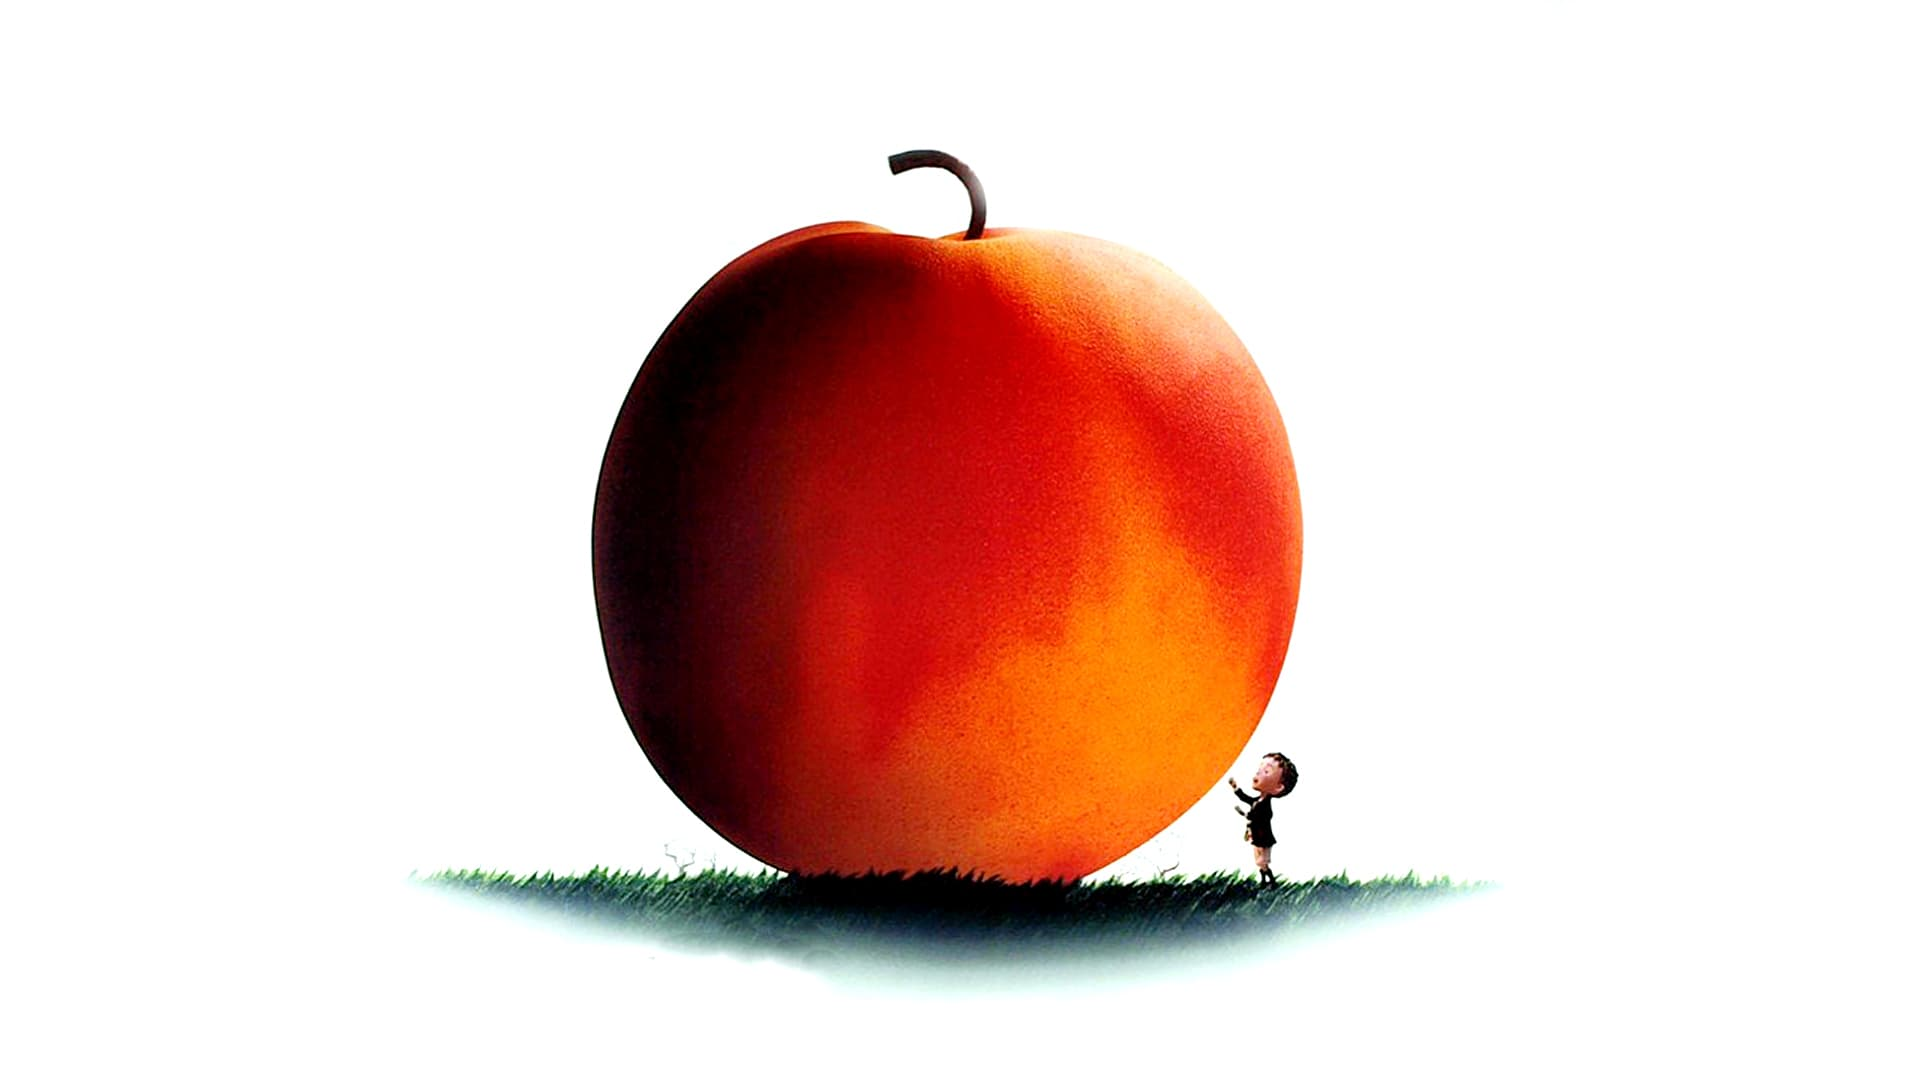 James And The Giant Peach Wallpapers High Quality